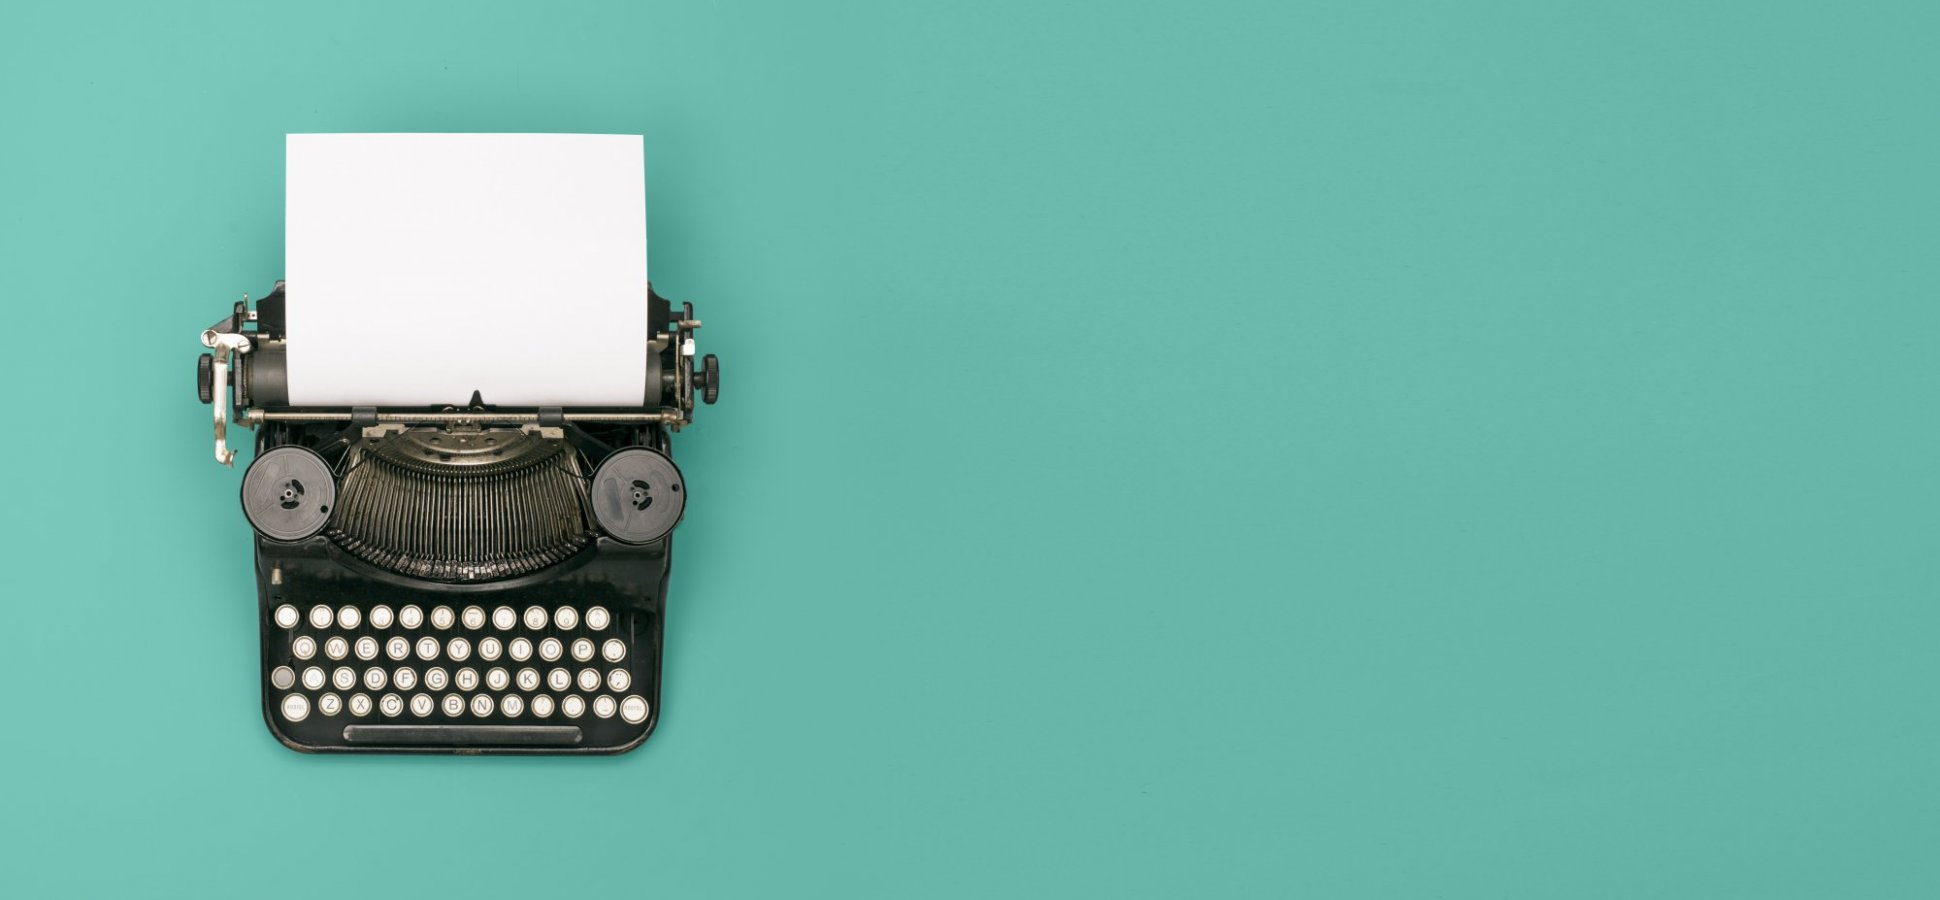 7 Steps to Creating a Powerful Story to Share With the World